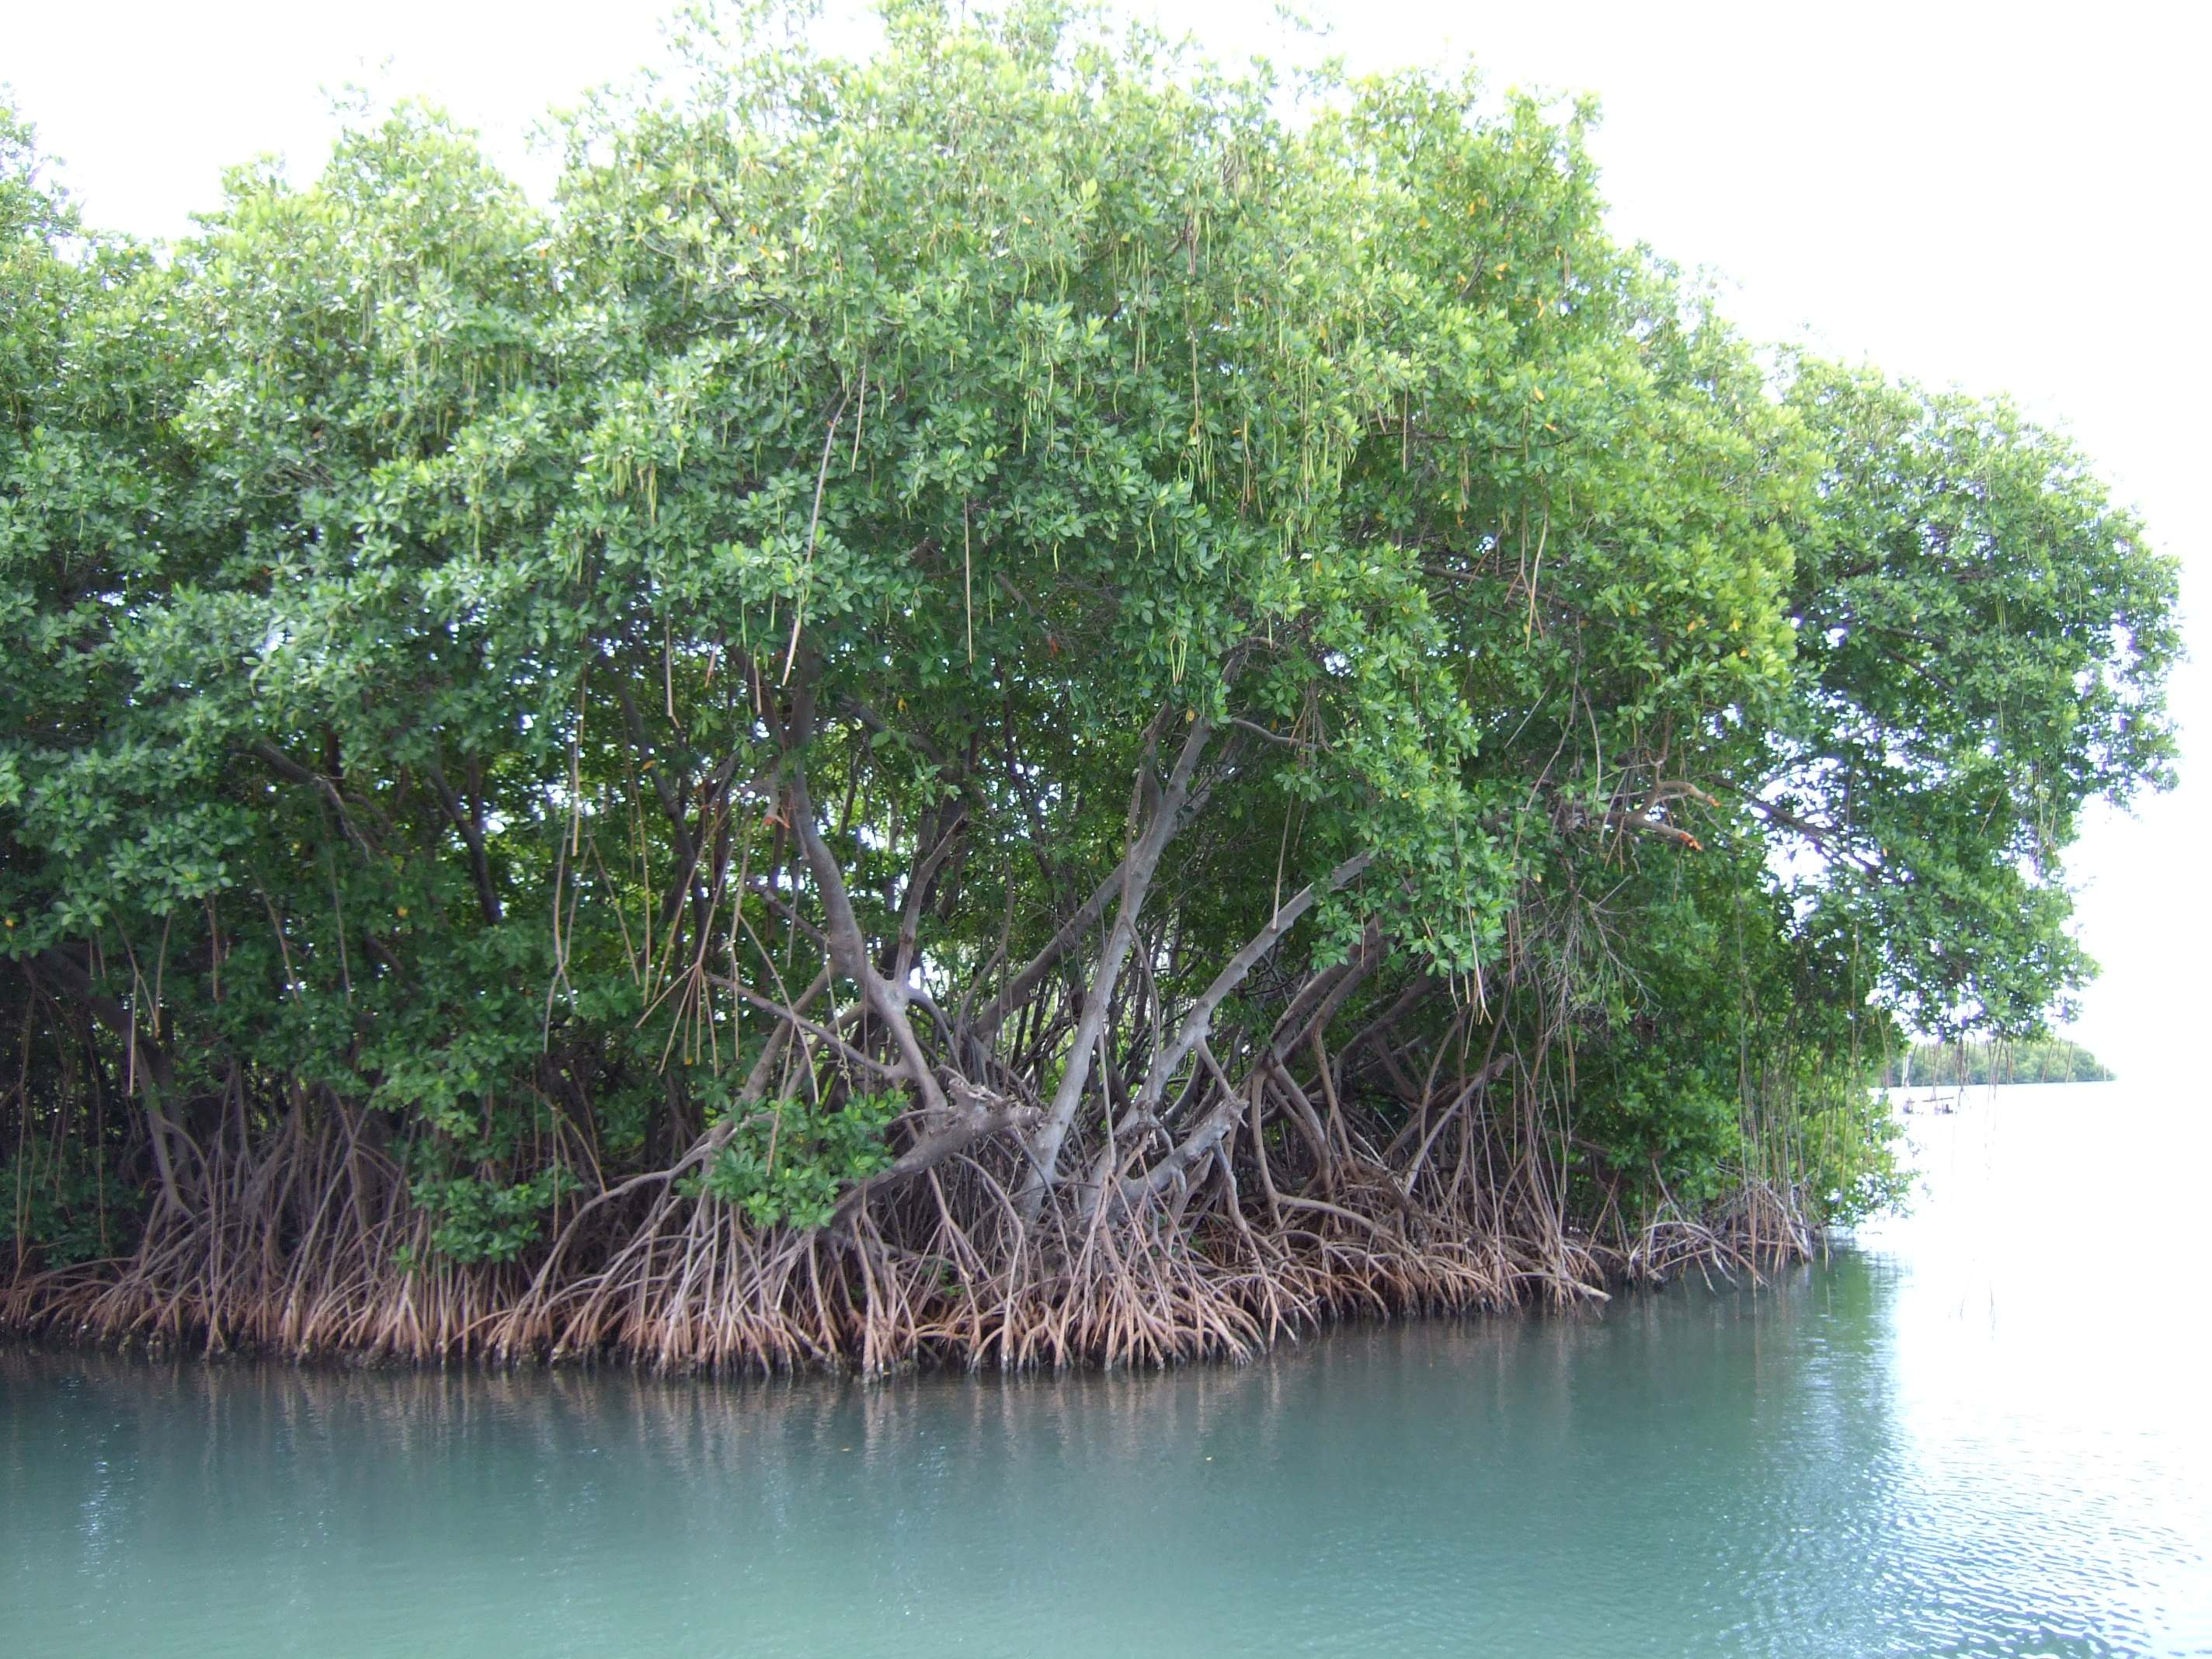 Mangroves: Photos of Plants and Animals | Smithsonian Ocean Portal